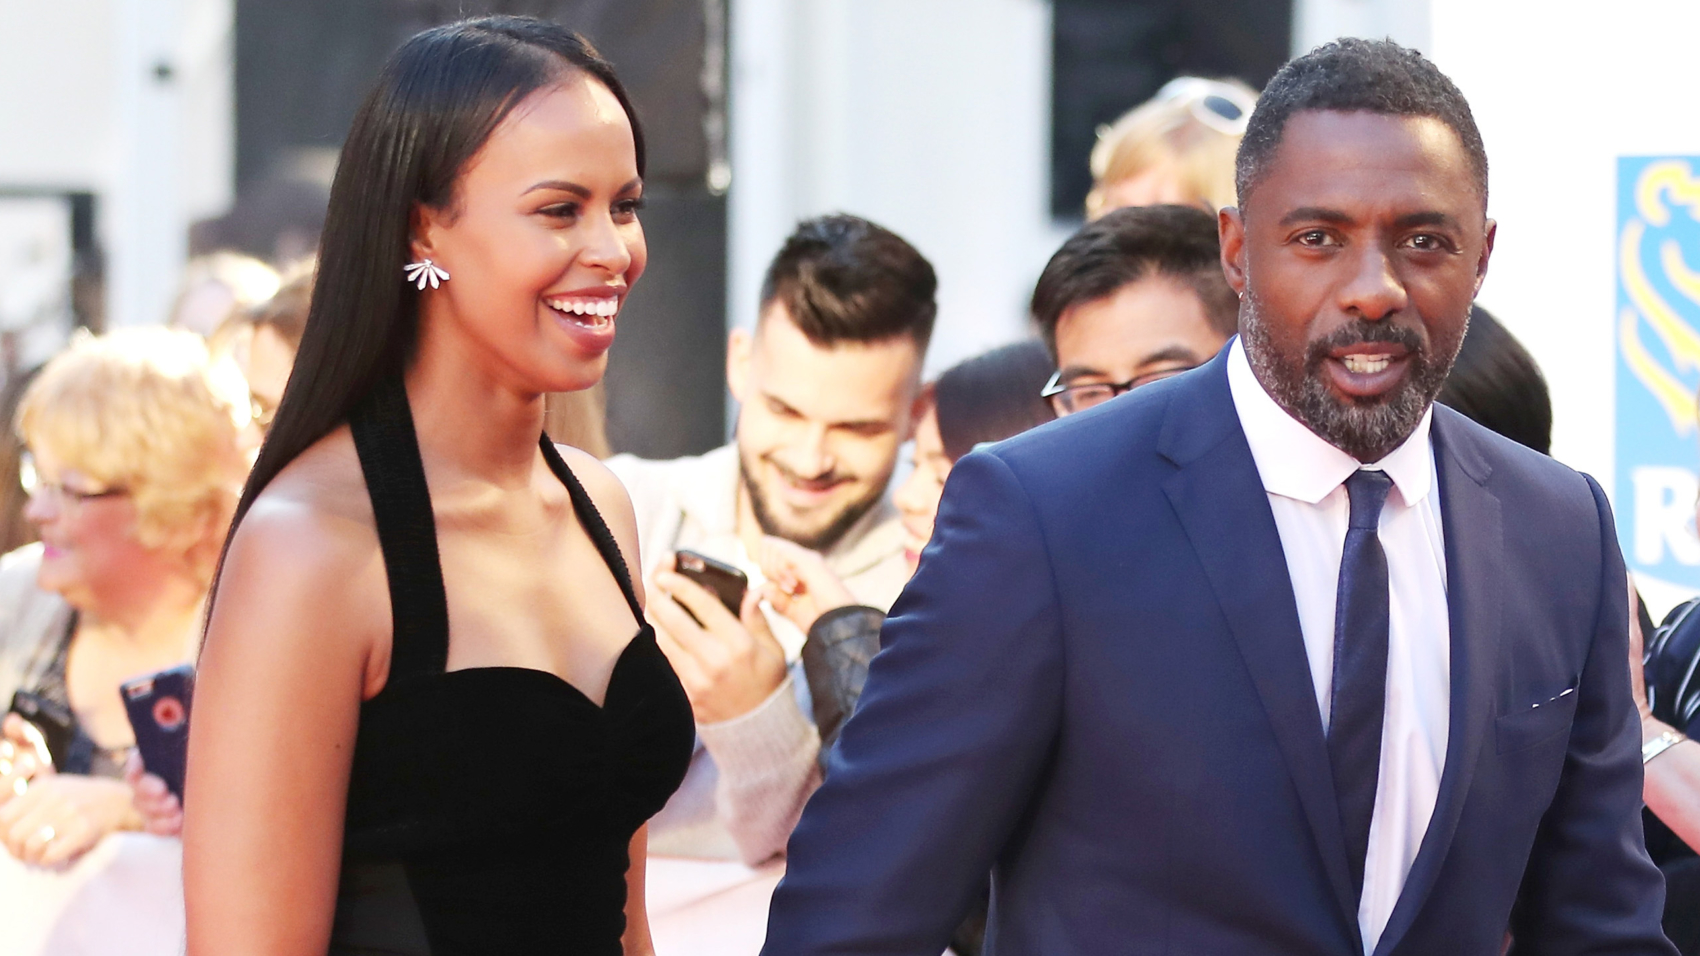 """TORONTO, ON - SEPTEMBER 10:  Actor Idris Elba (R) and guest attend the premiere of """"The Mountain Between Us"""" during the 2017 Toronto International Film Festival at Roy Thomson Hall on September 10, 2017 in Toronto, Canada.  (Photo by J. Countess/WireImage)"""